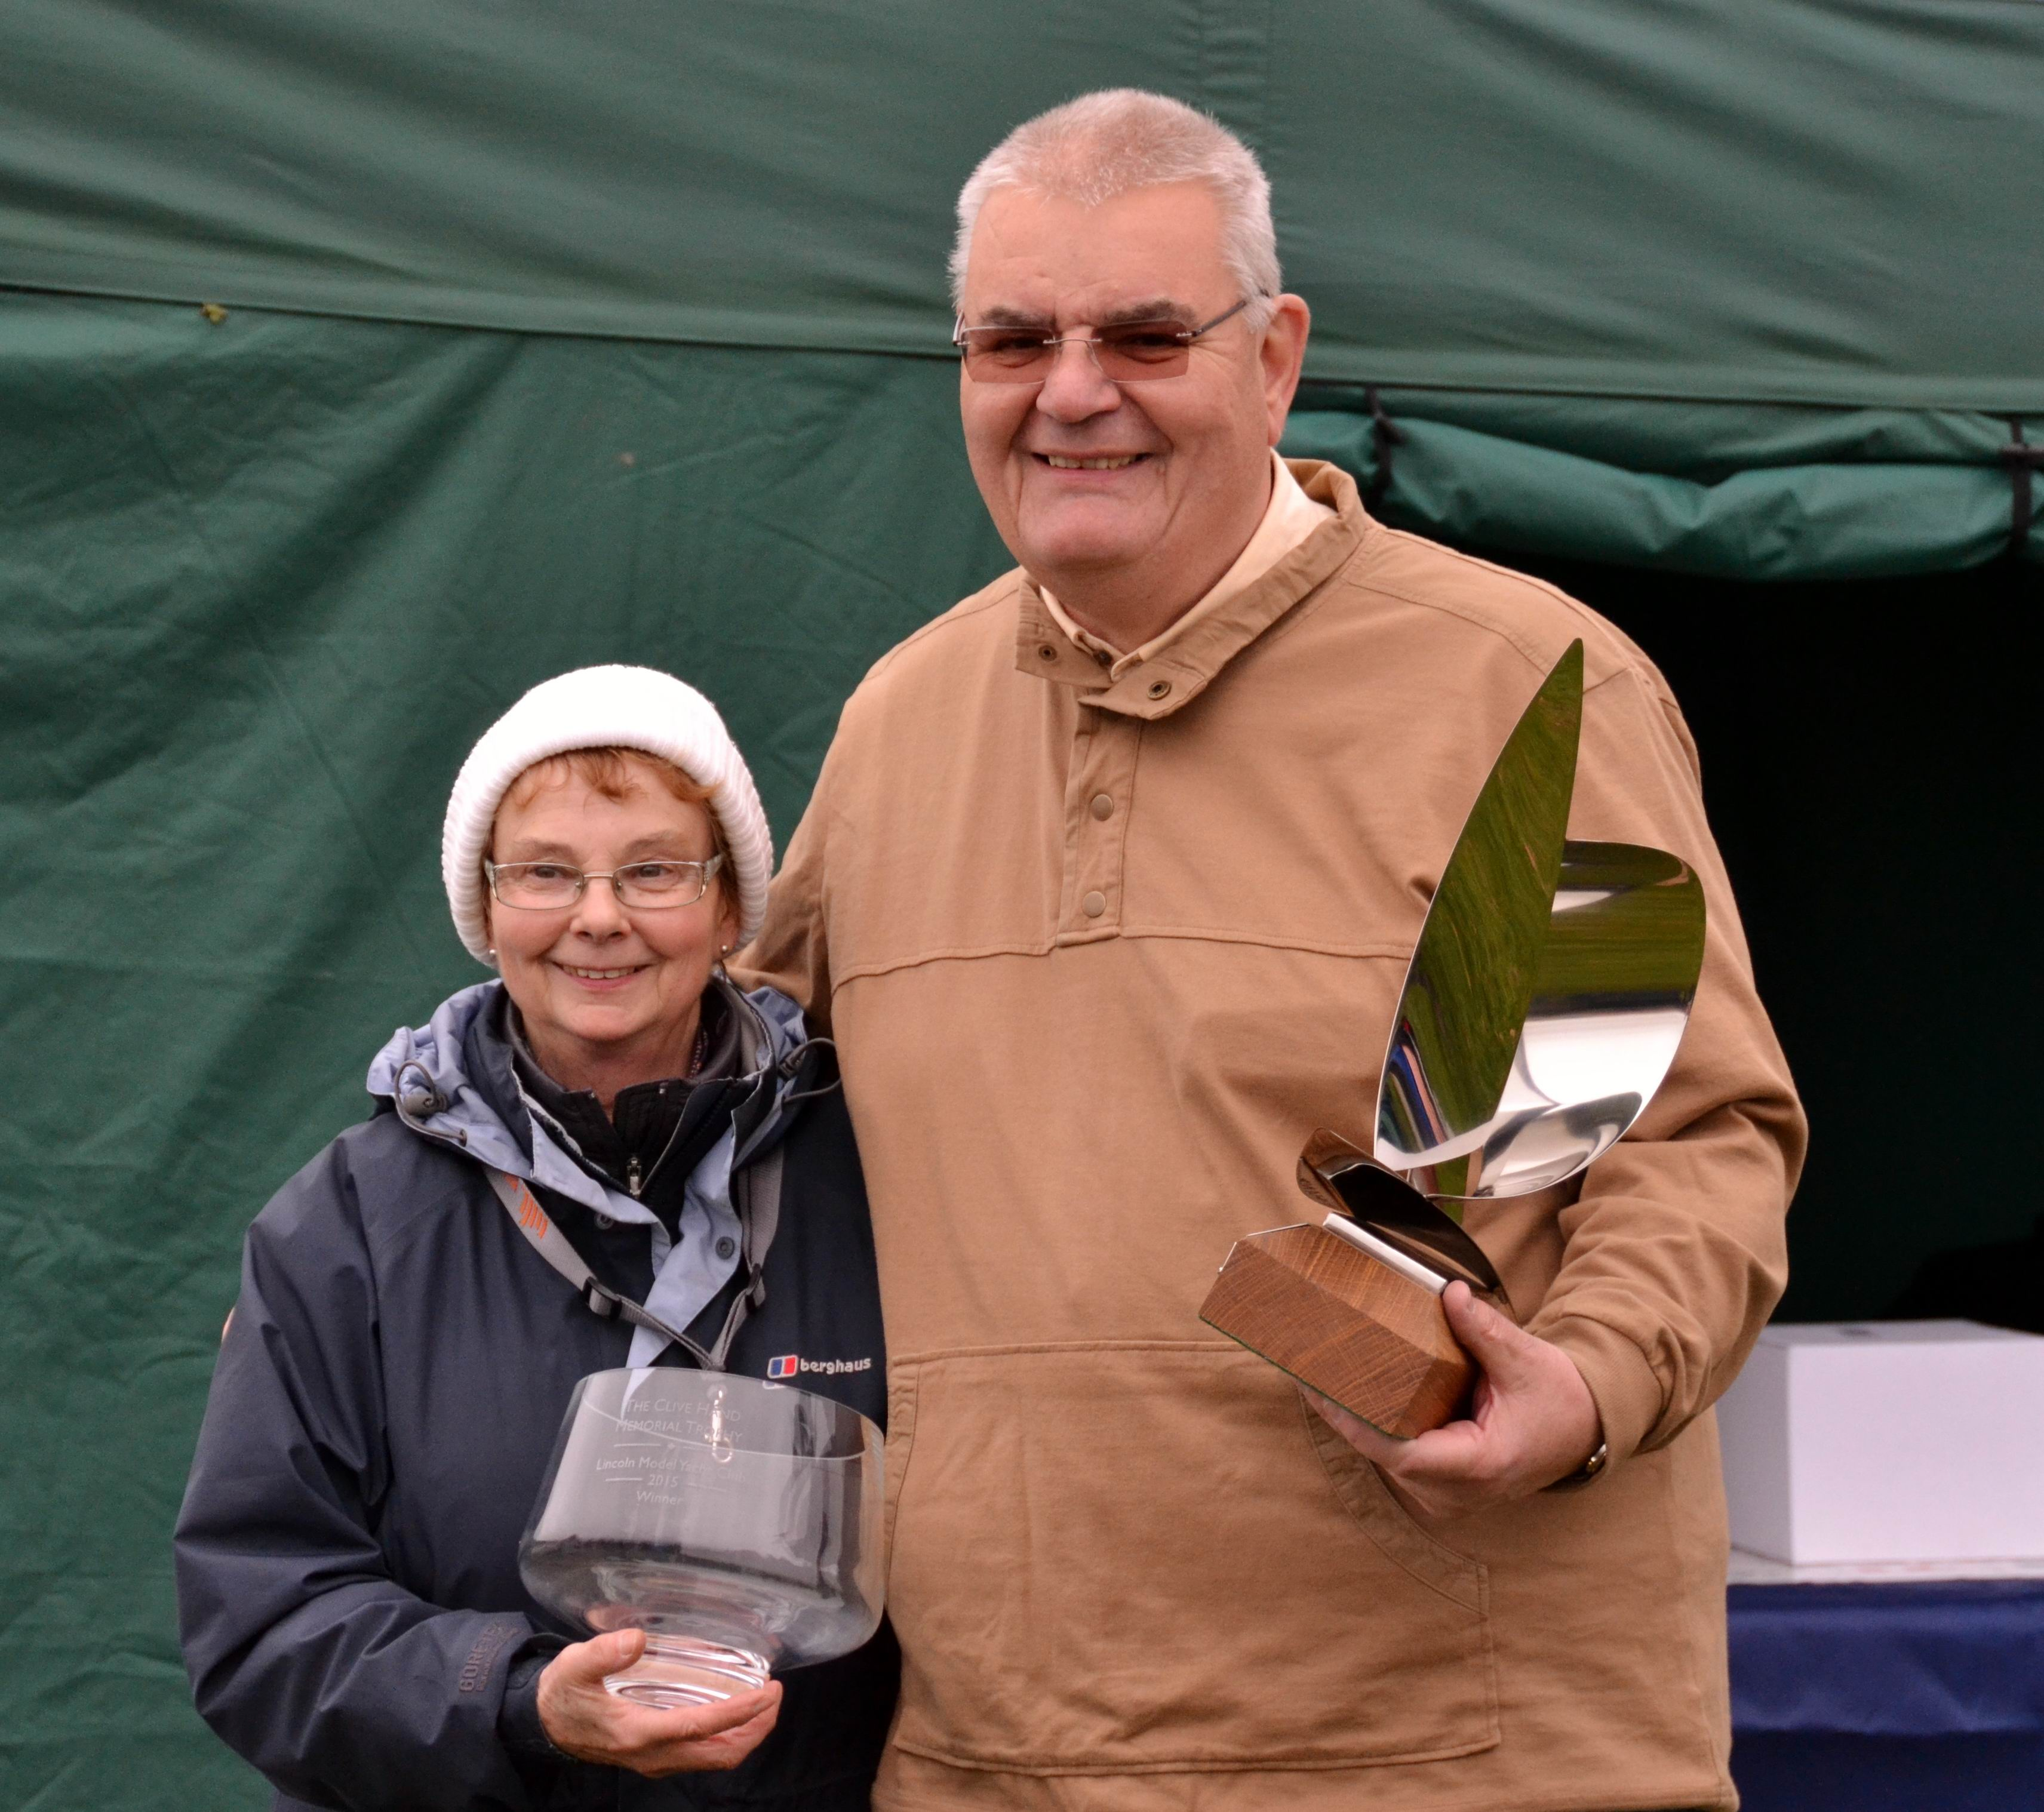 https://lincolnradiosailingclub.files.wordpress.com/2015/10/jen-hand-with-dave-thomas-winner-of-the-2015-clive-hand-memorial-trophy.jpg